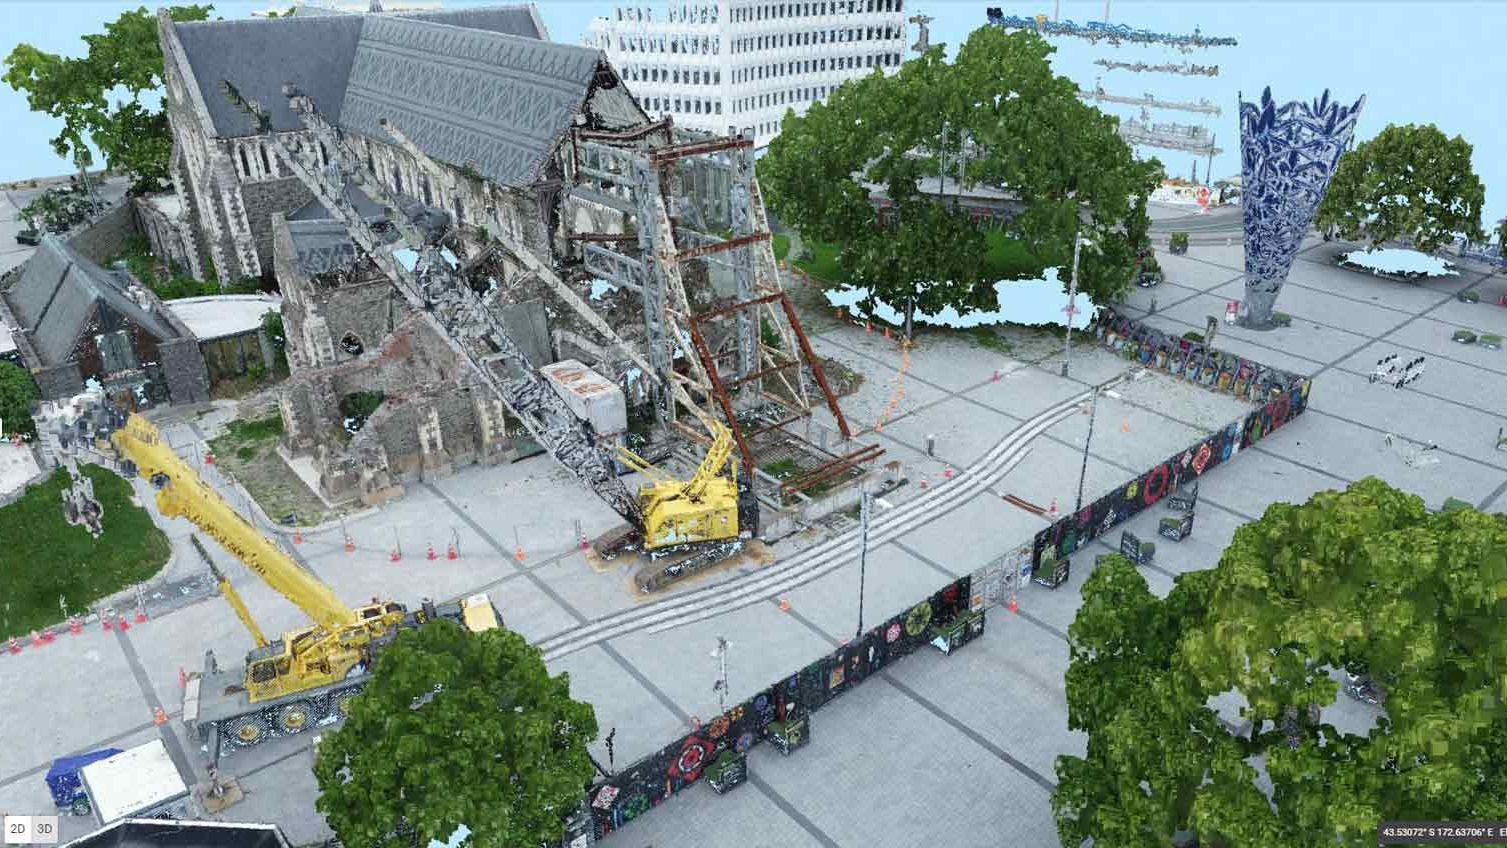 Modelo-3D-de-la-Catedral-de-Christchurch